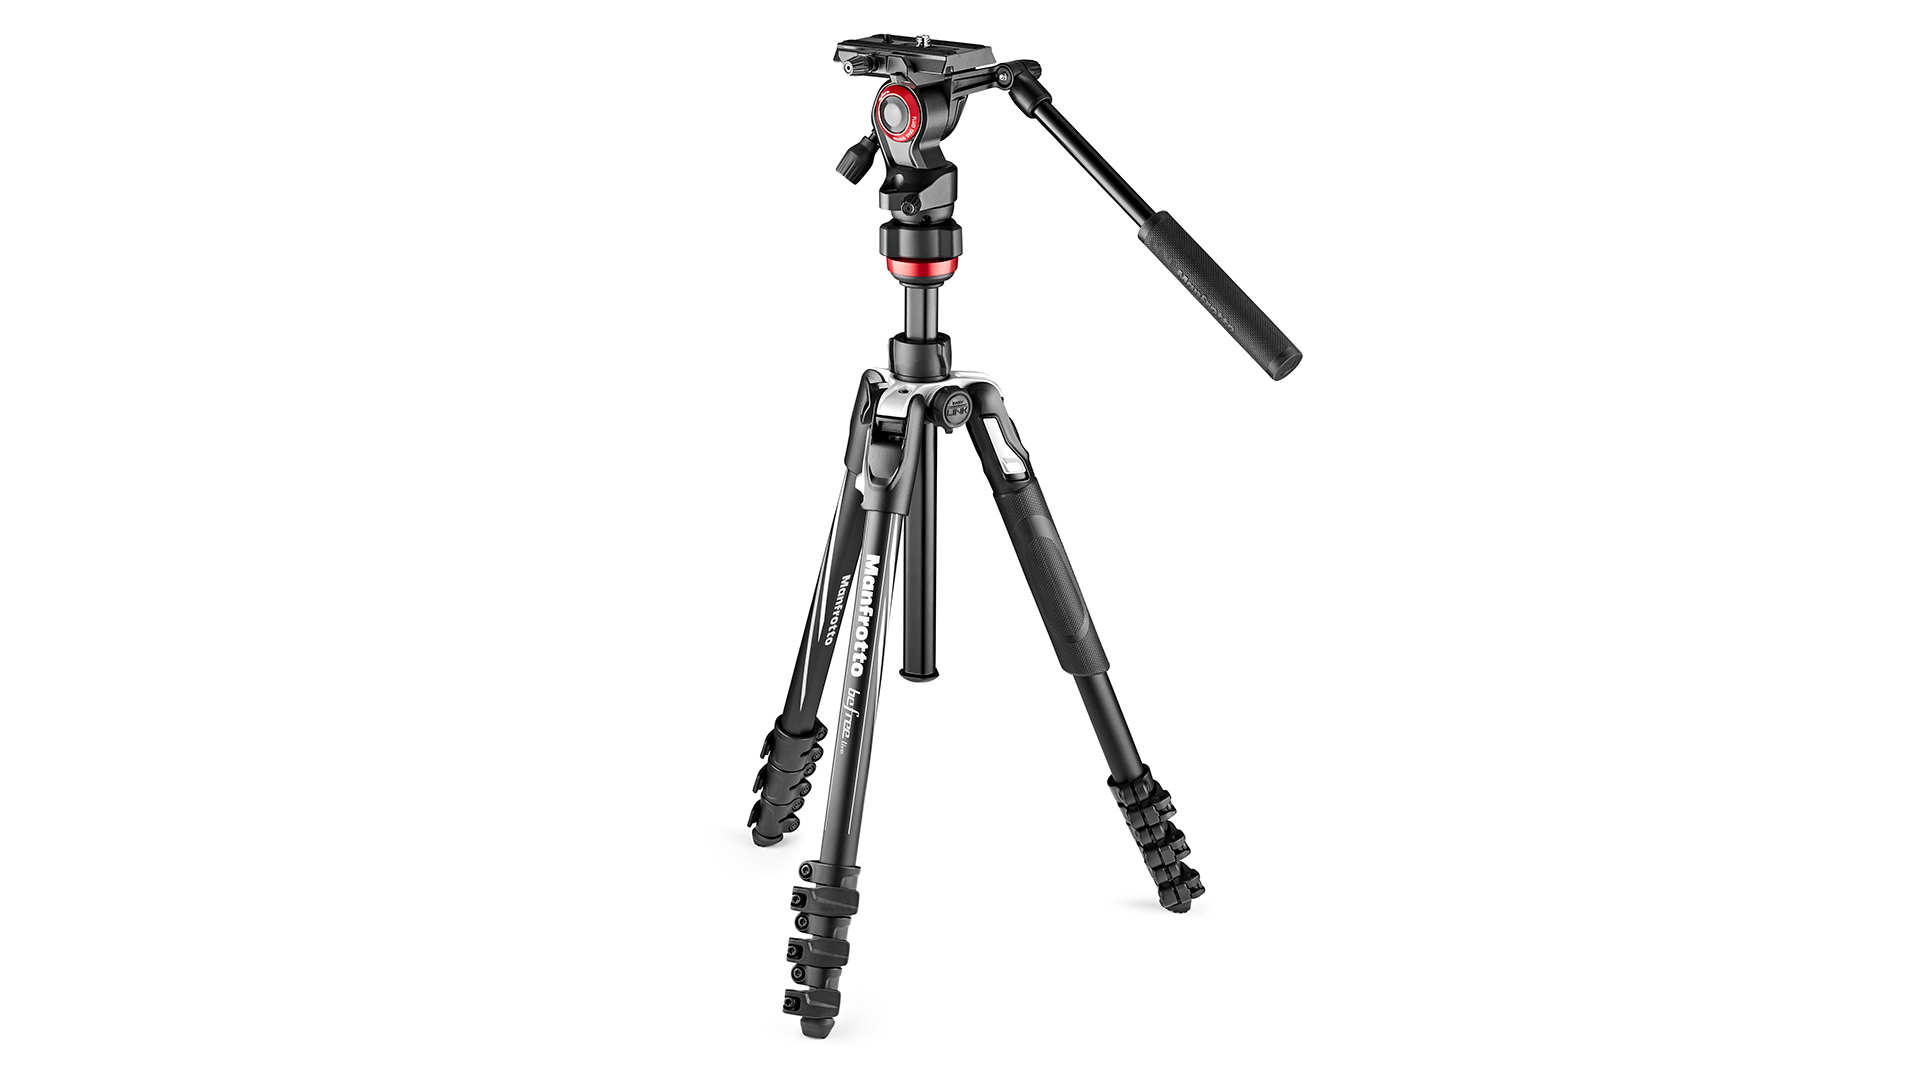 Manfrotto Befree 2N1 tripod